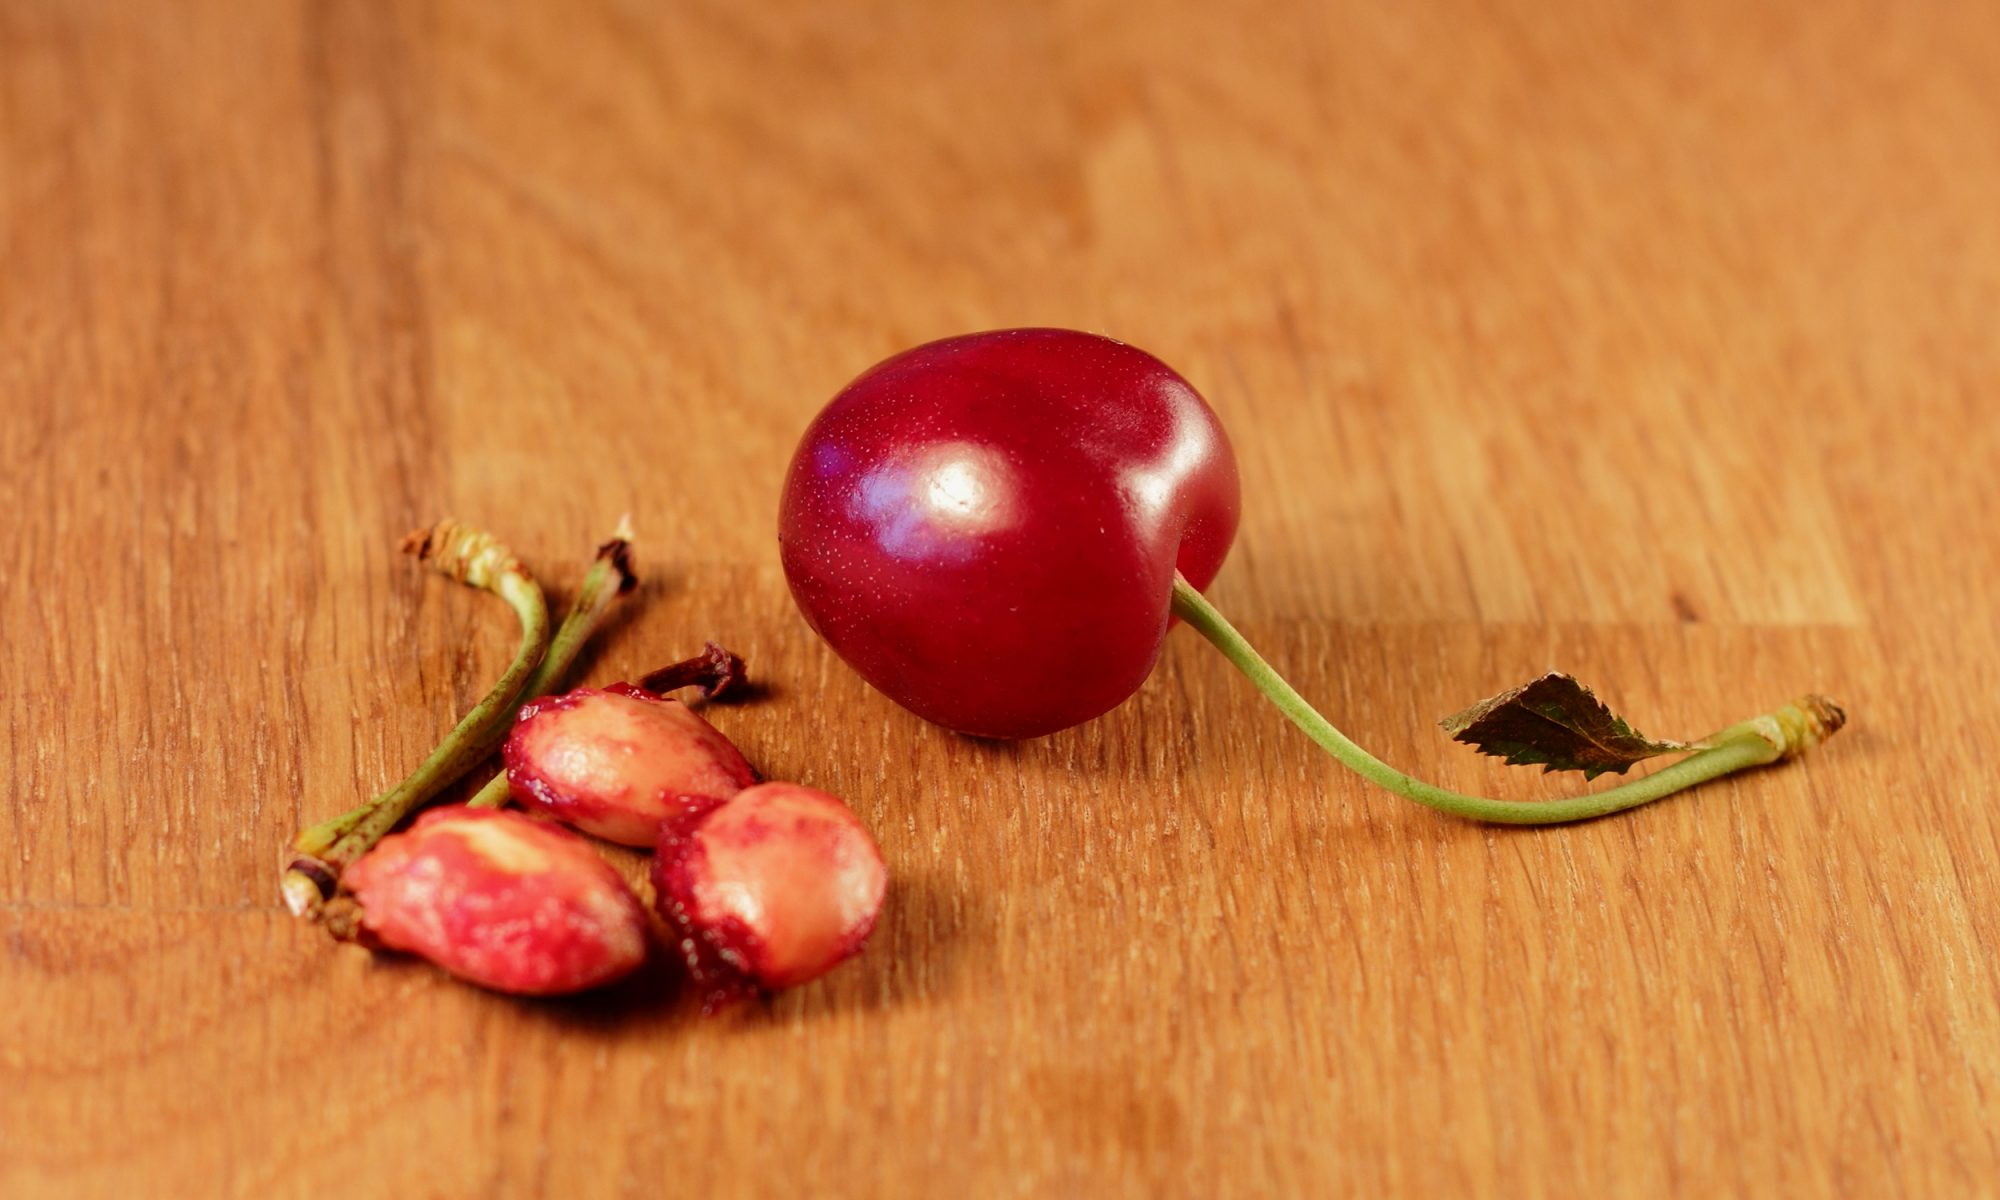 EC: How to Pit Cherries Without Buying a Silly Gadget